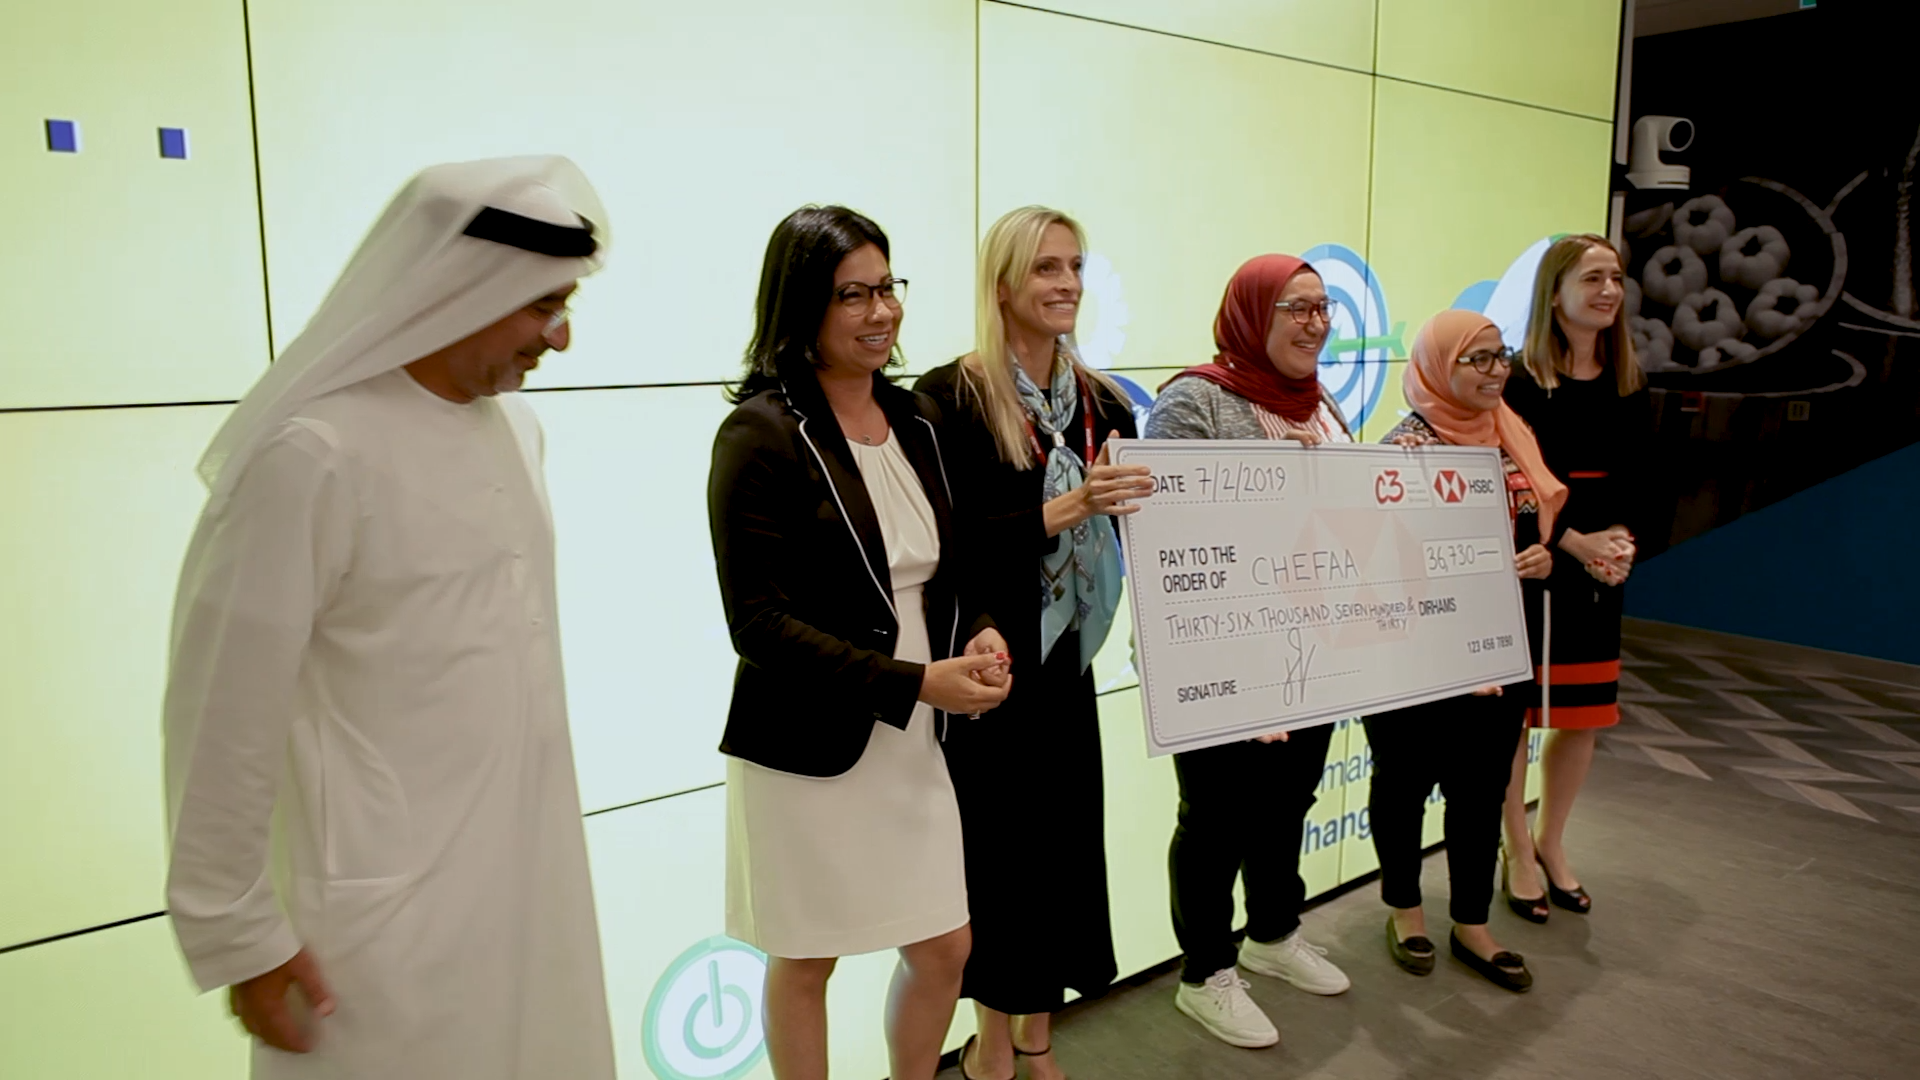 Chefaa named winner of the C3 Social Impact Accelerator Program 2019 powered by HSBC